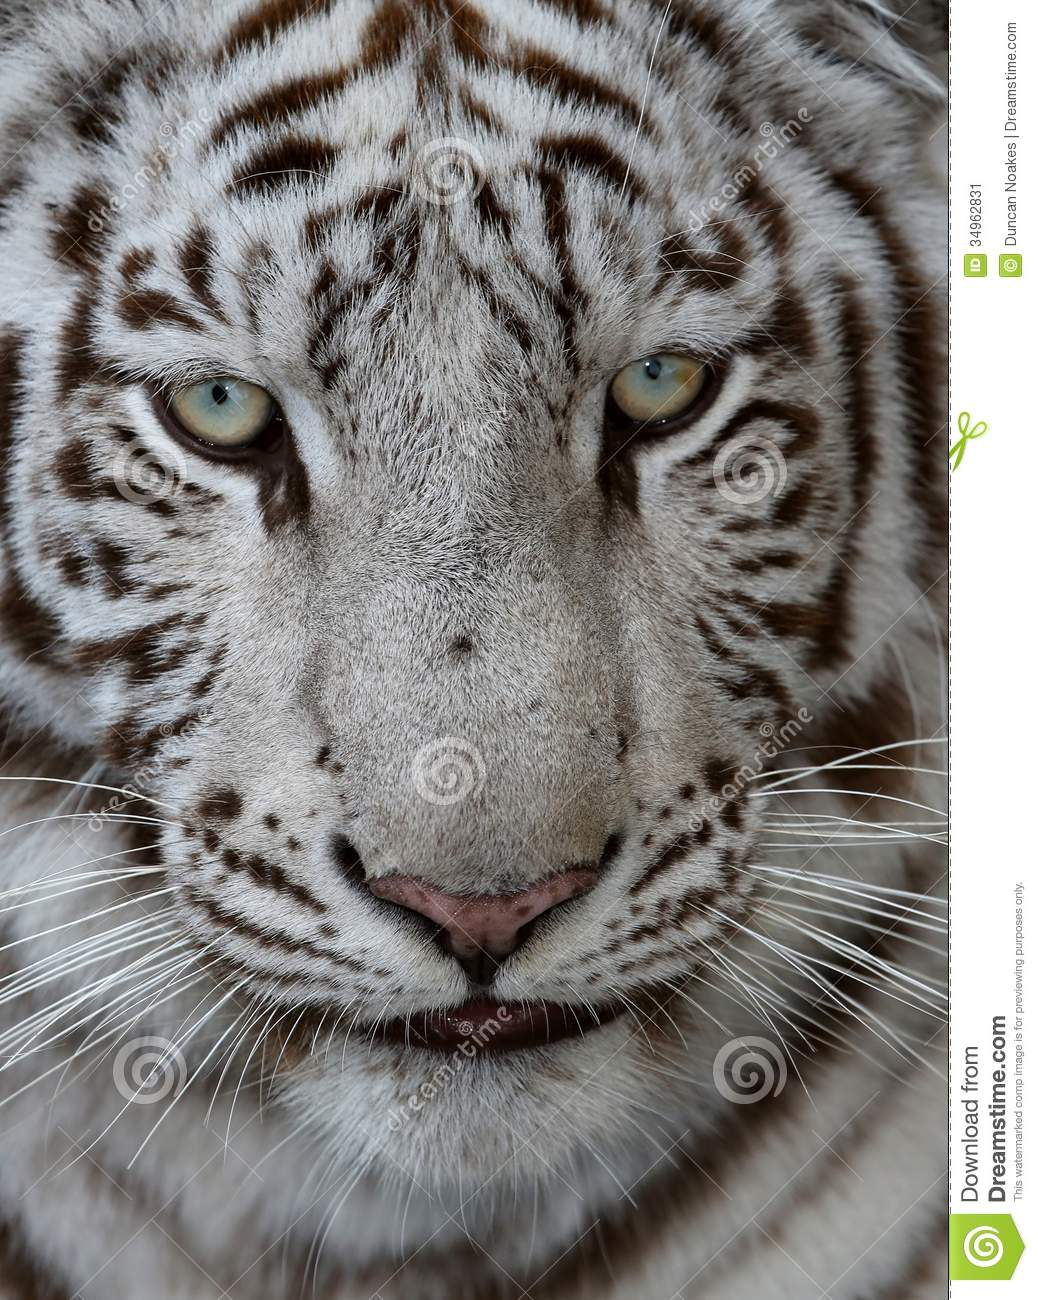 White tiger close up face - photo#16